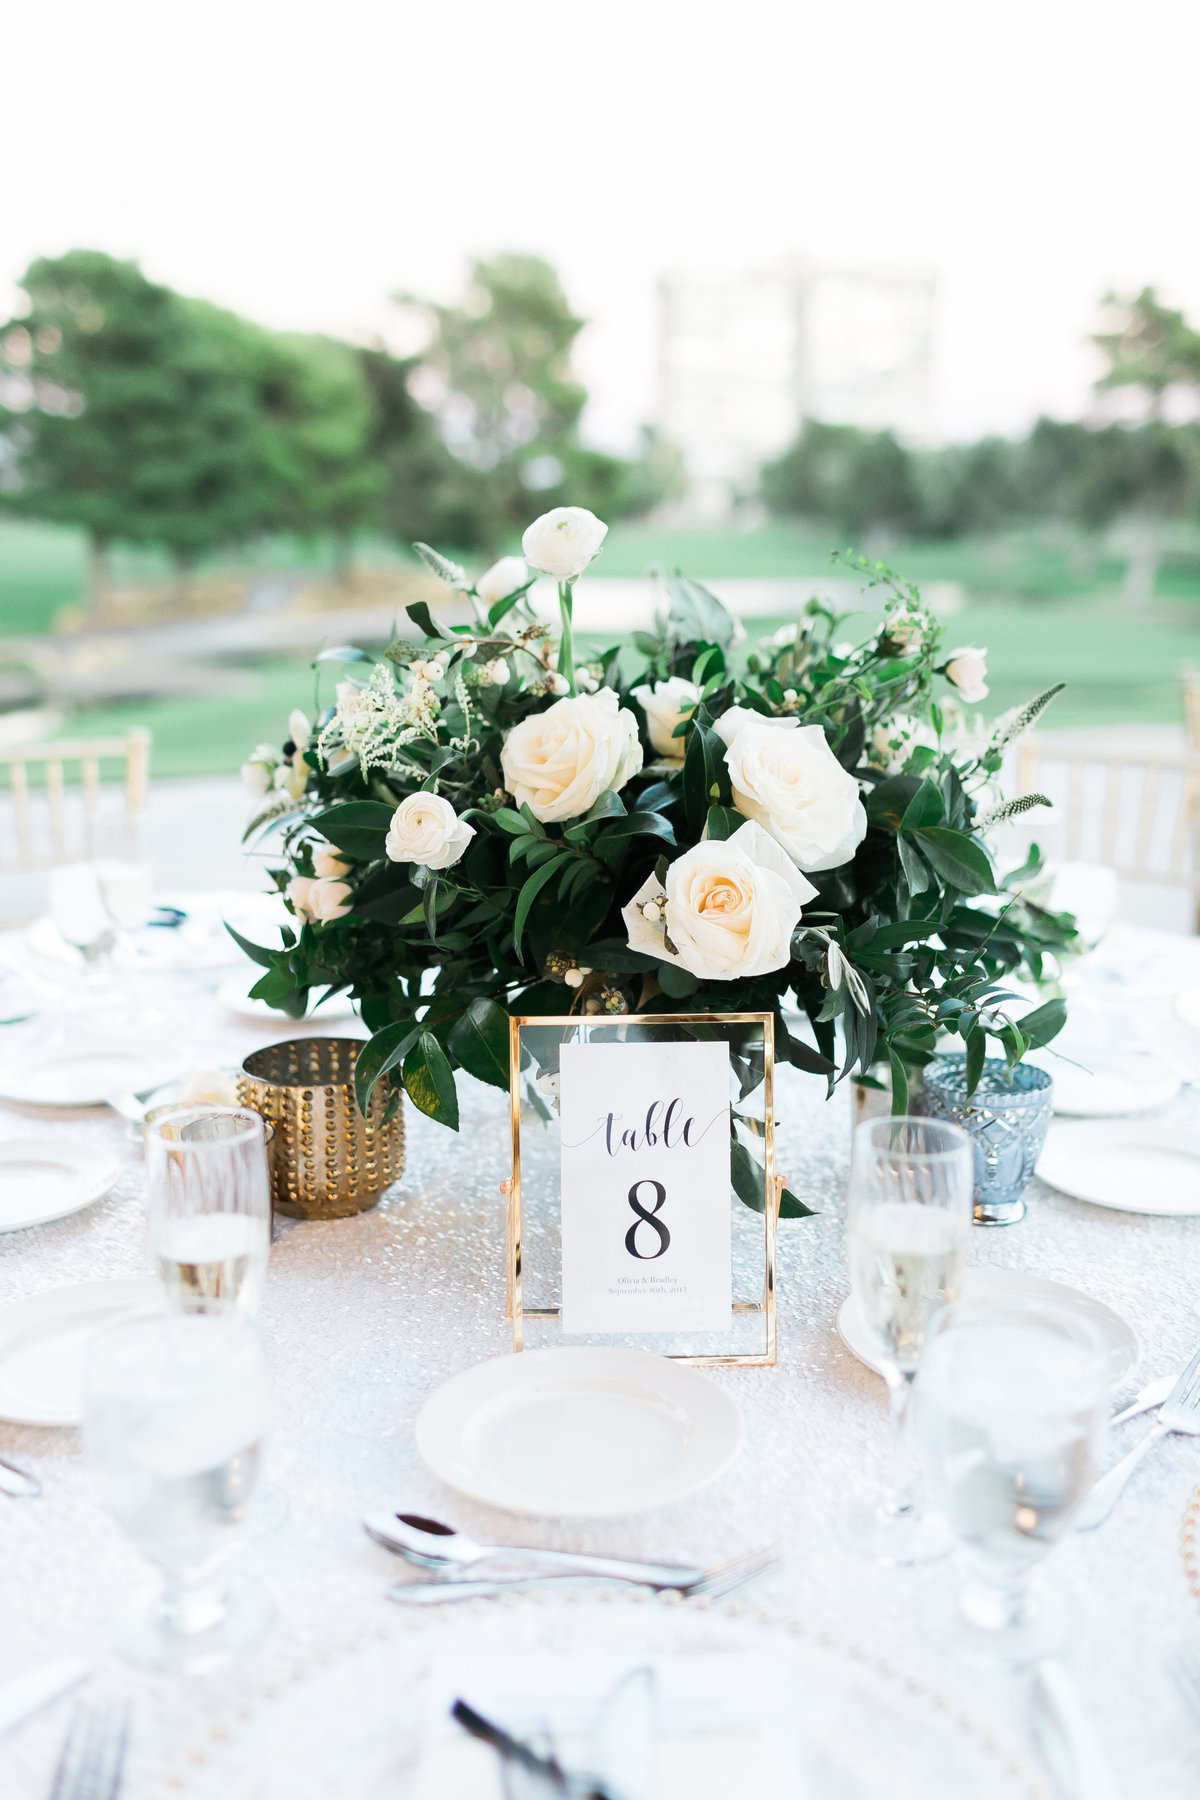 white and greenery centerpiece with gold framed table number